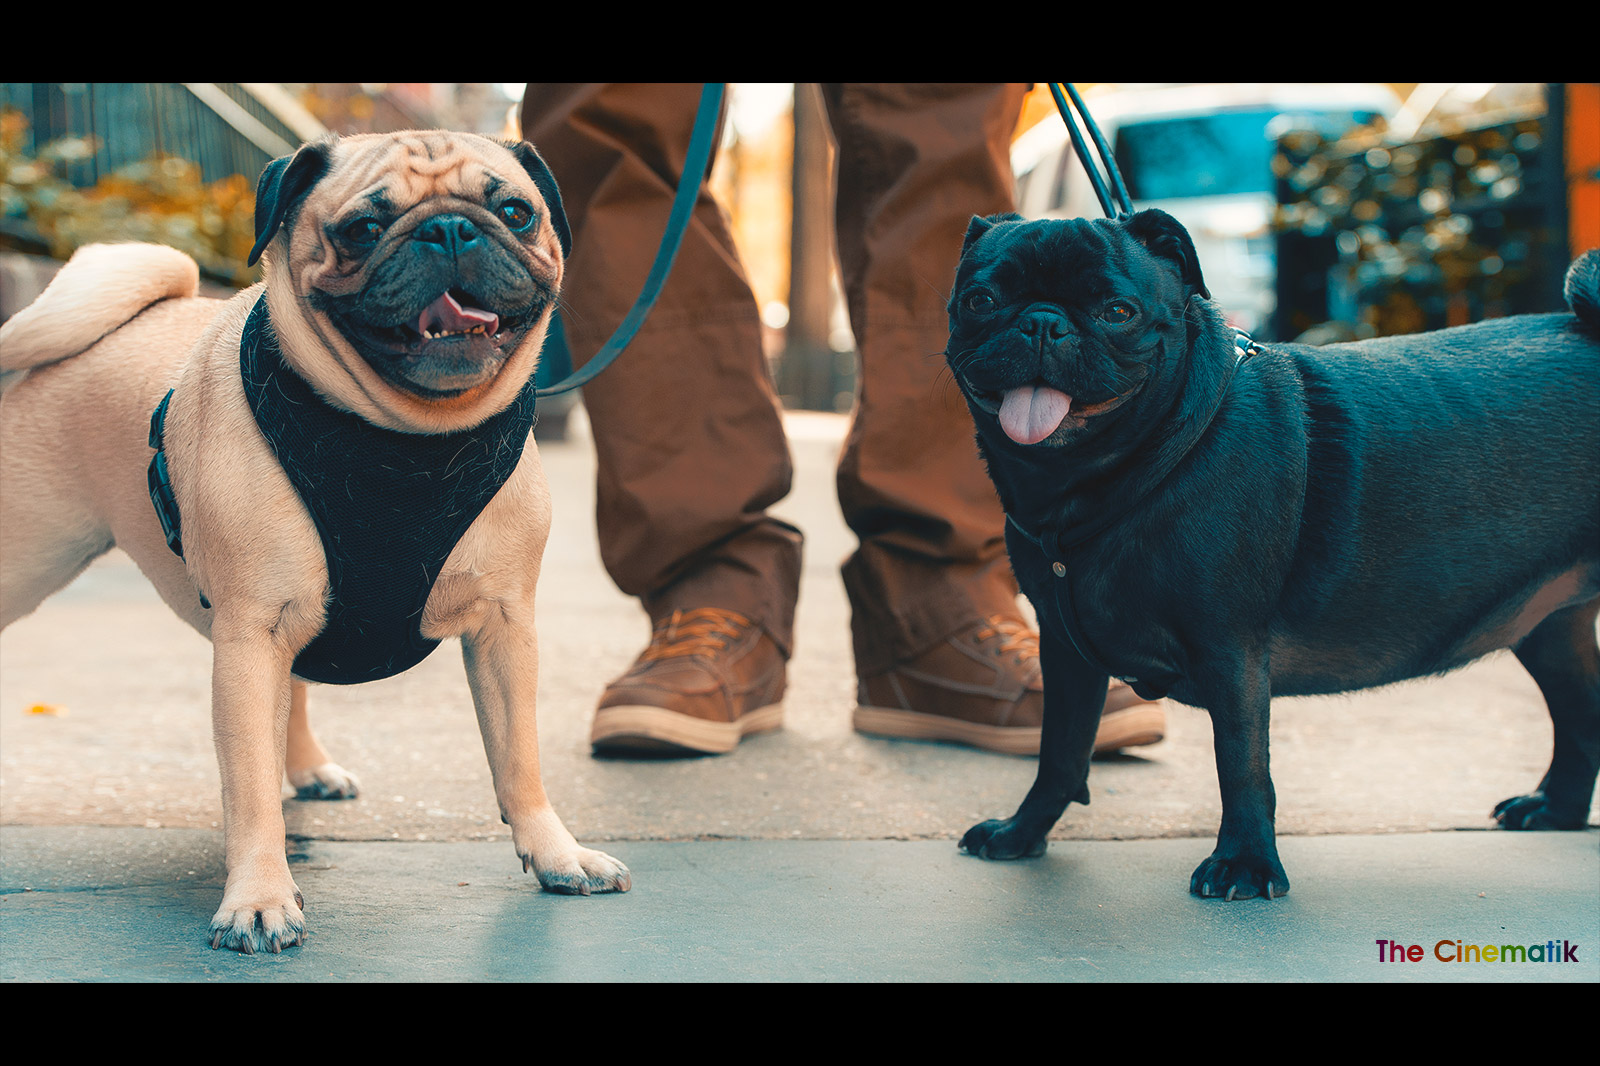 Two little French Bulldog friends smiling at the camera in New York cinematic photograph by Kamal Lahmadi/THE CINEMATIK